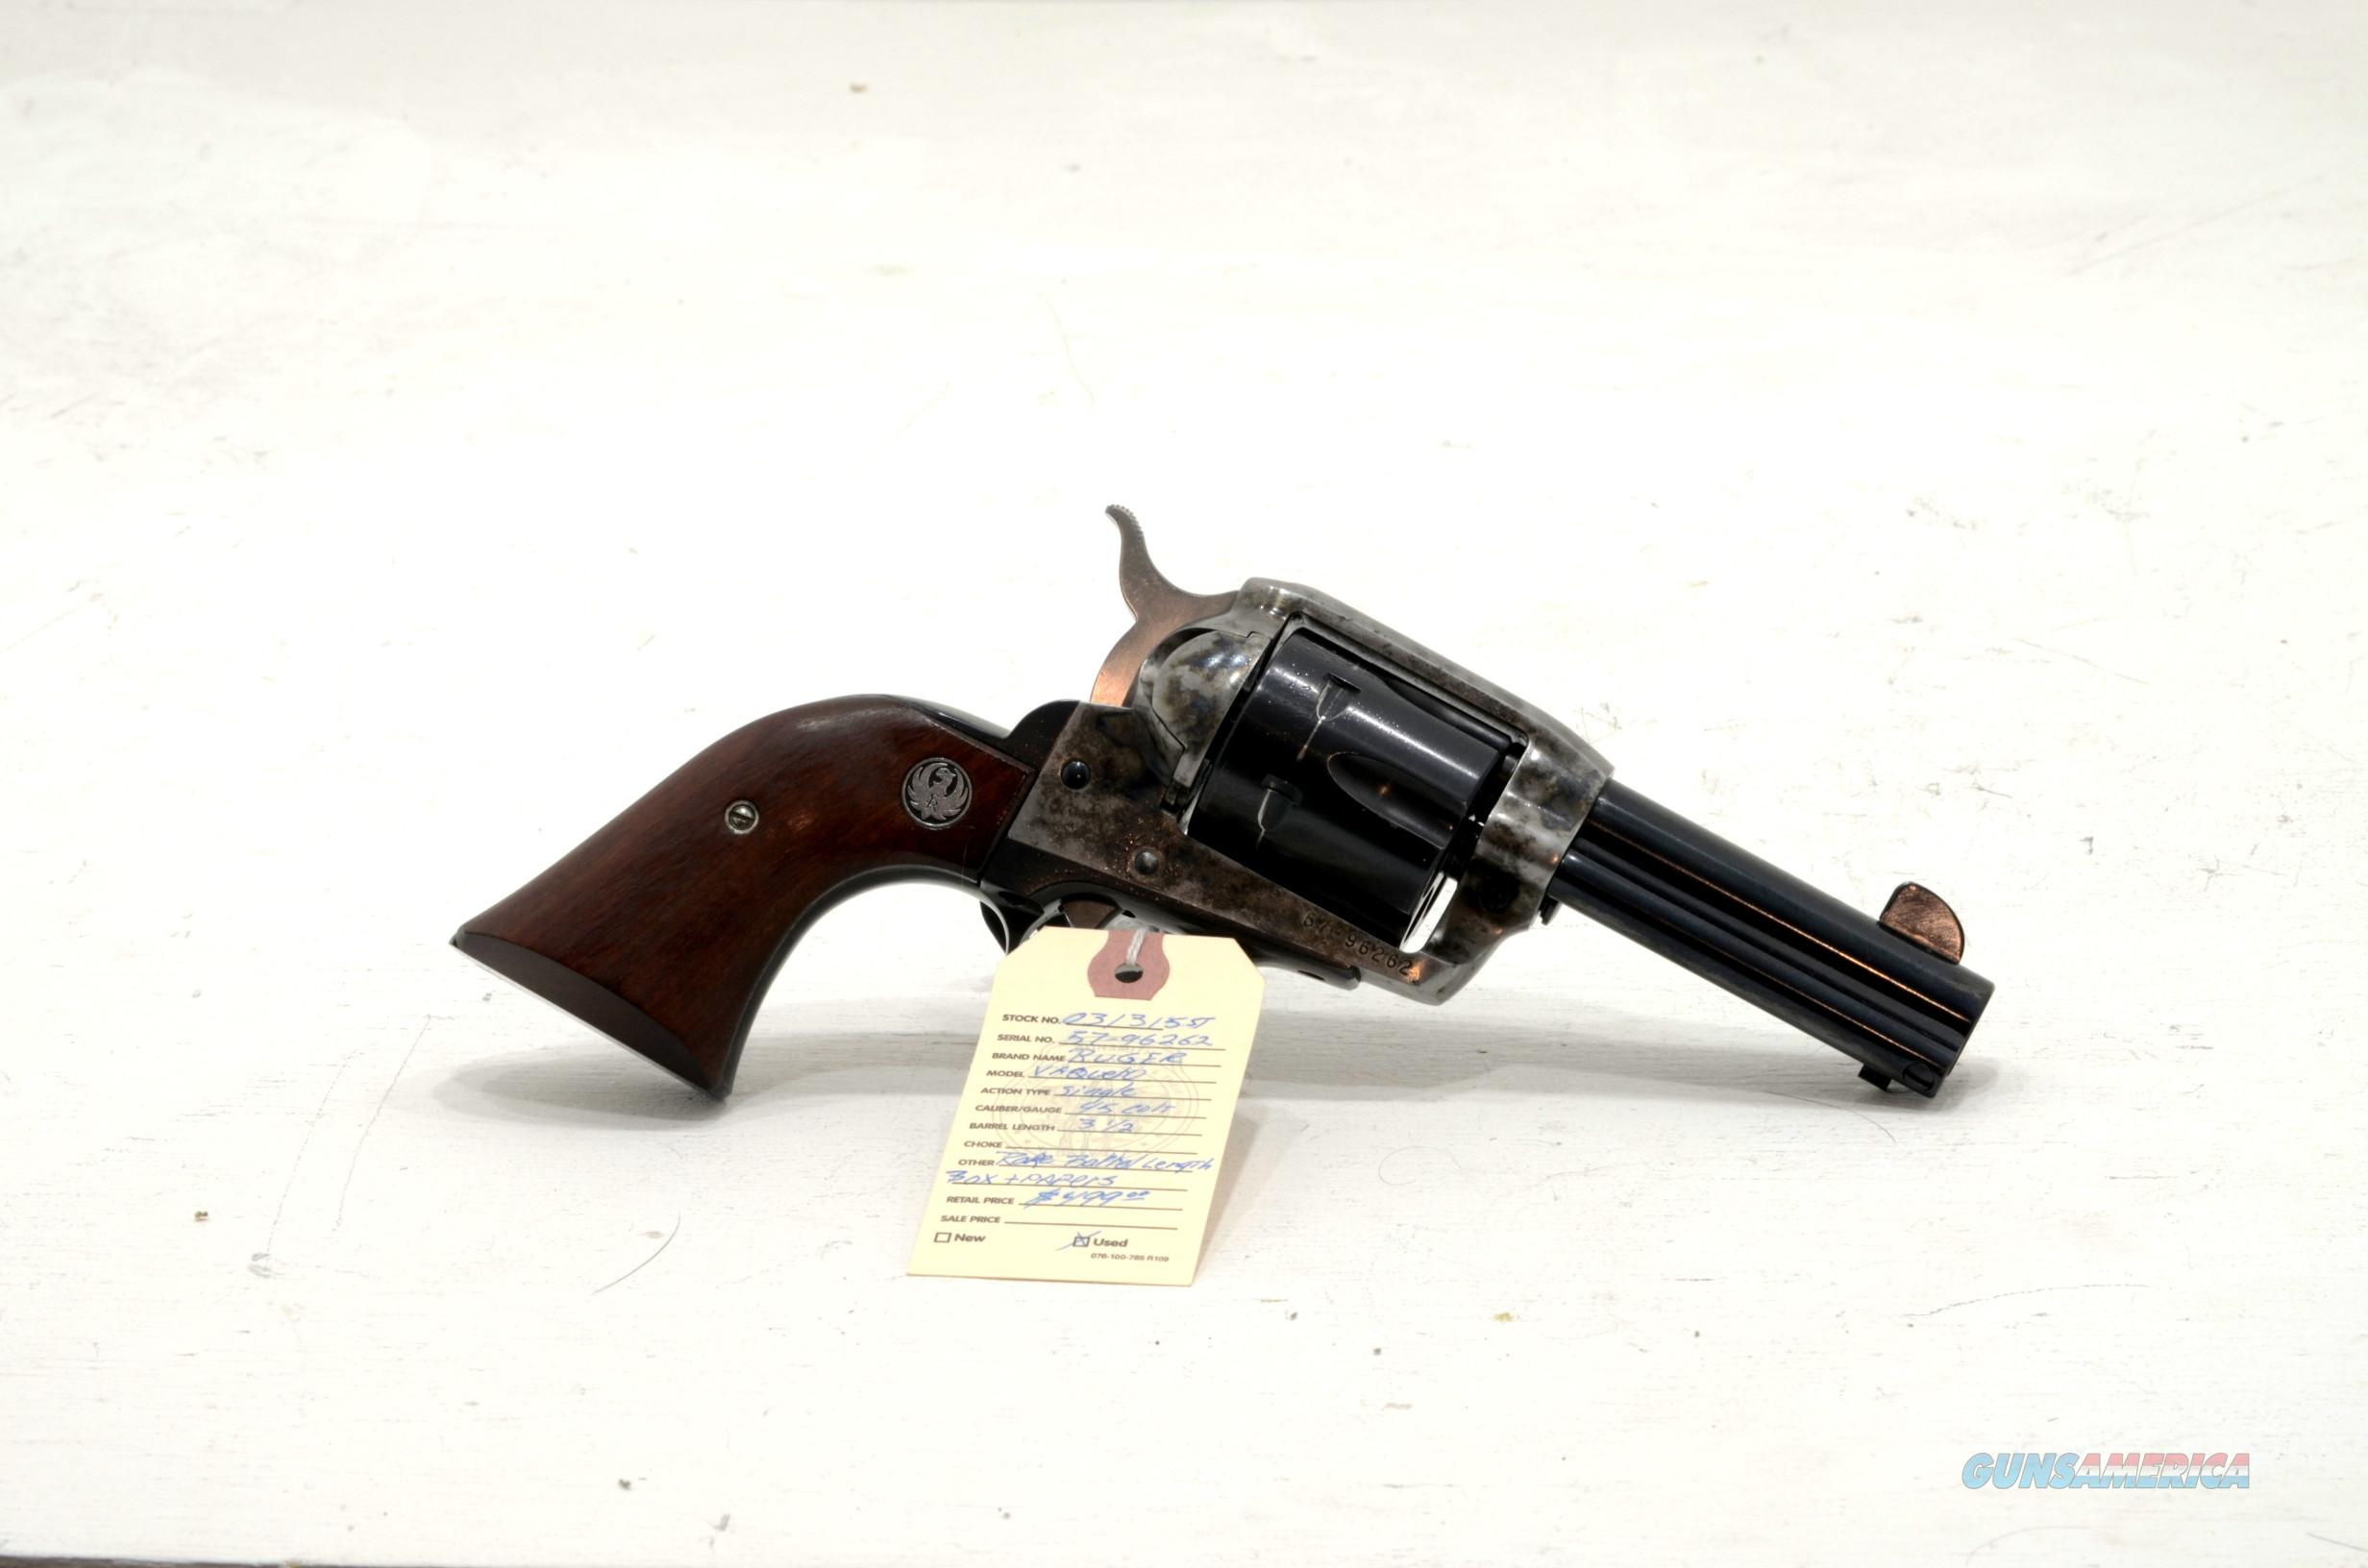 "Ruger Vaquero .45 colt revolver 3.5"" barrel  Guns > Pistols > Ruger Single Action Revolvers > Cowboy Action"